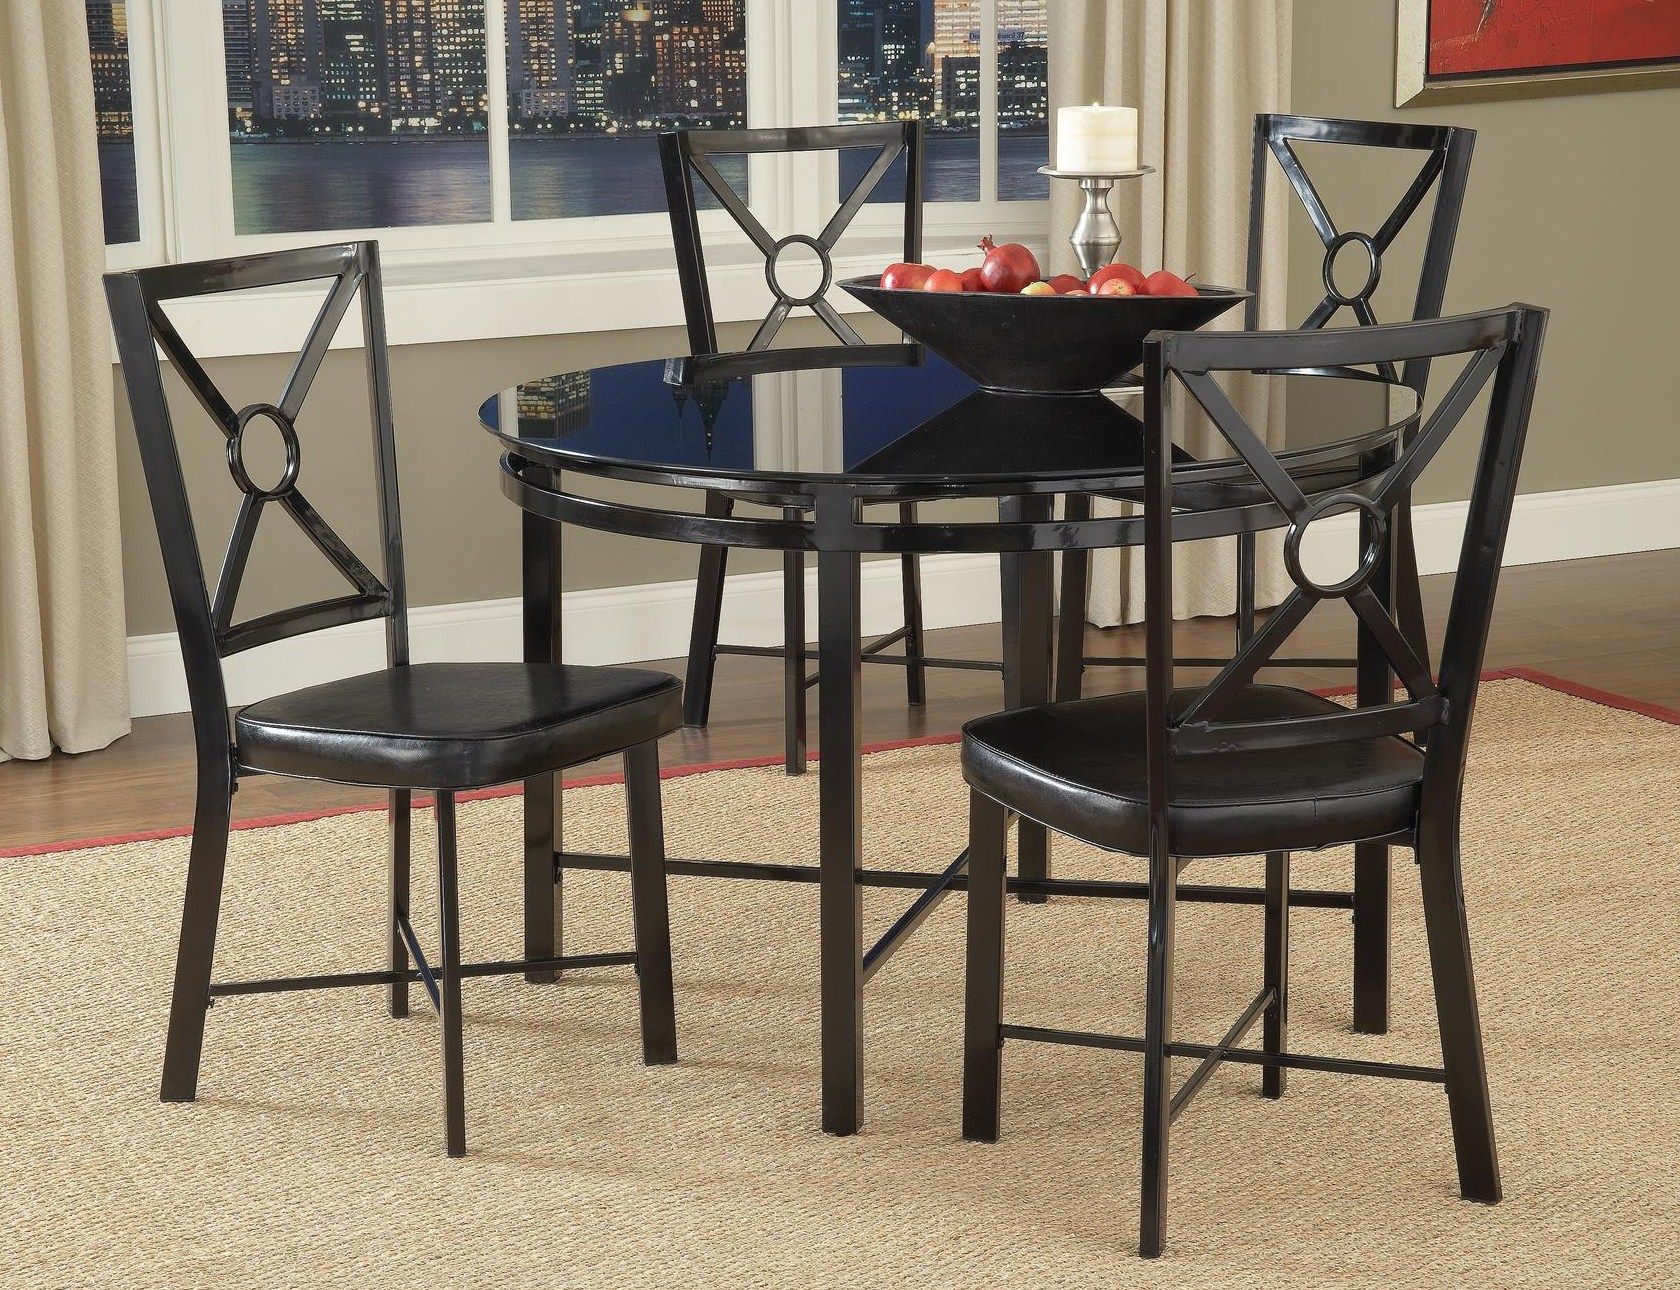 Diamond Black 5 Piece Dinette Table And 4 Chairs With Gl Top Crossbraced Metal Frames 359 00 42 Dia X 30 H Chair 17